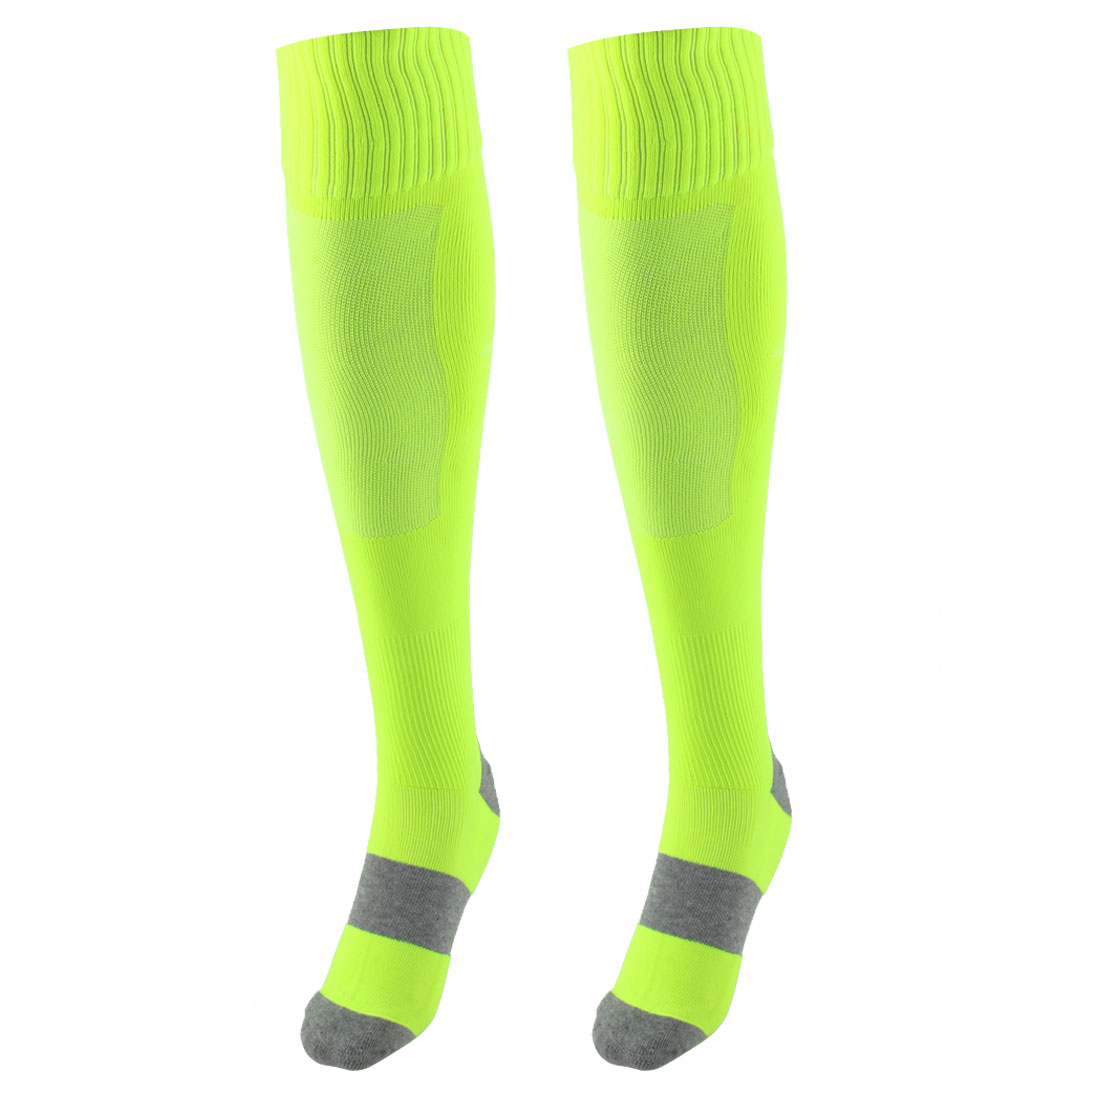 Unisex Outdoor Sports Nylon Non Slip Stretch Rugby Soccer Football Long Socks Fluorescent Green Pair